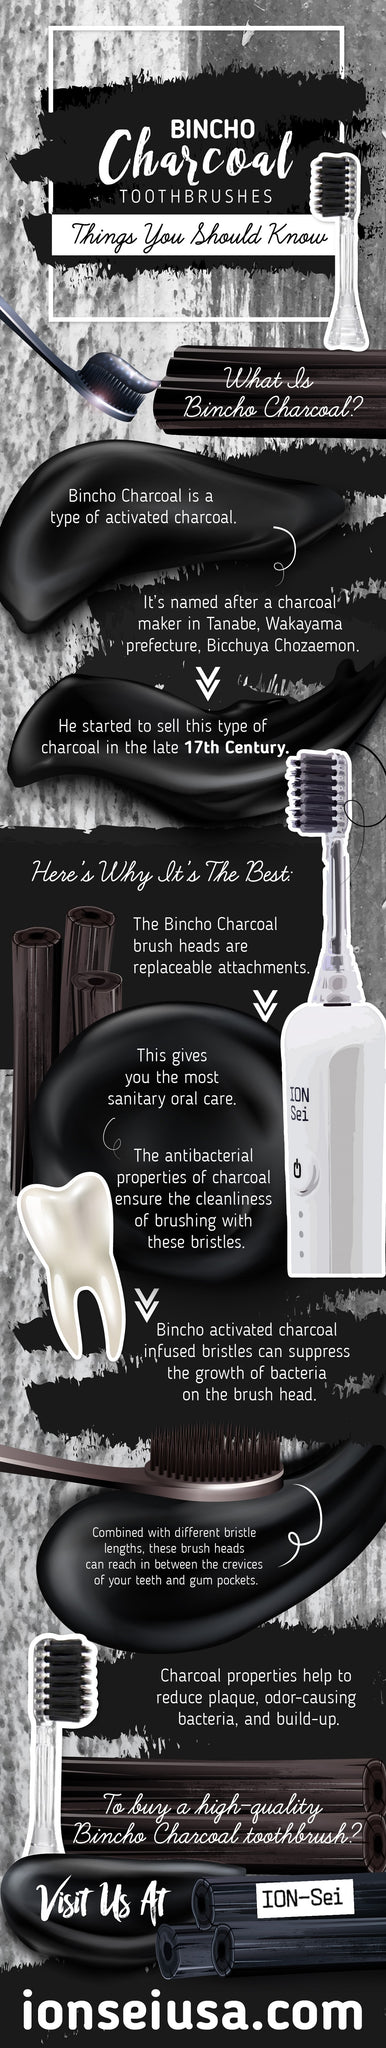 BINCHO Charcoal Toothbrushes things you should know